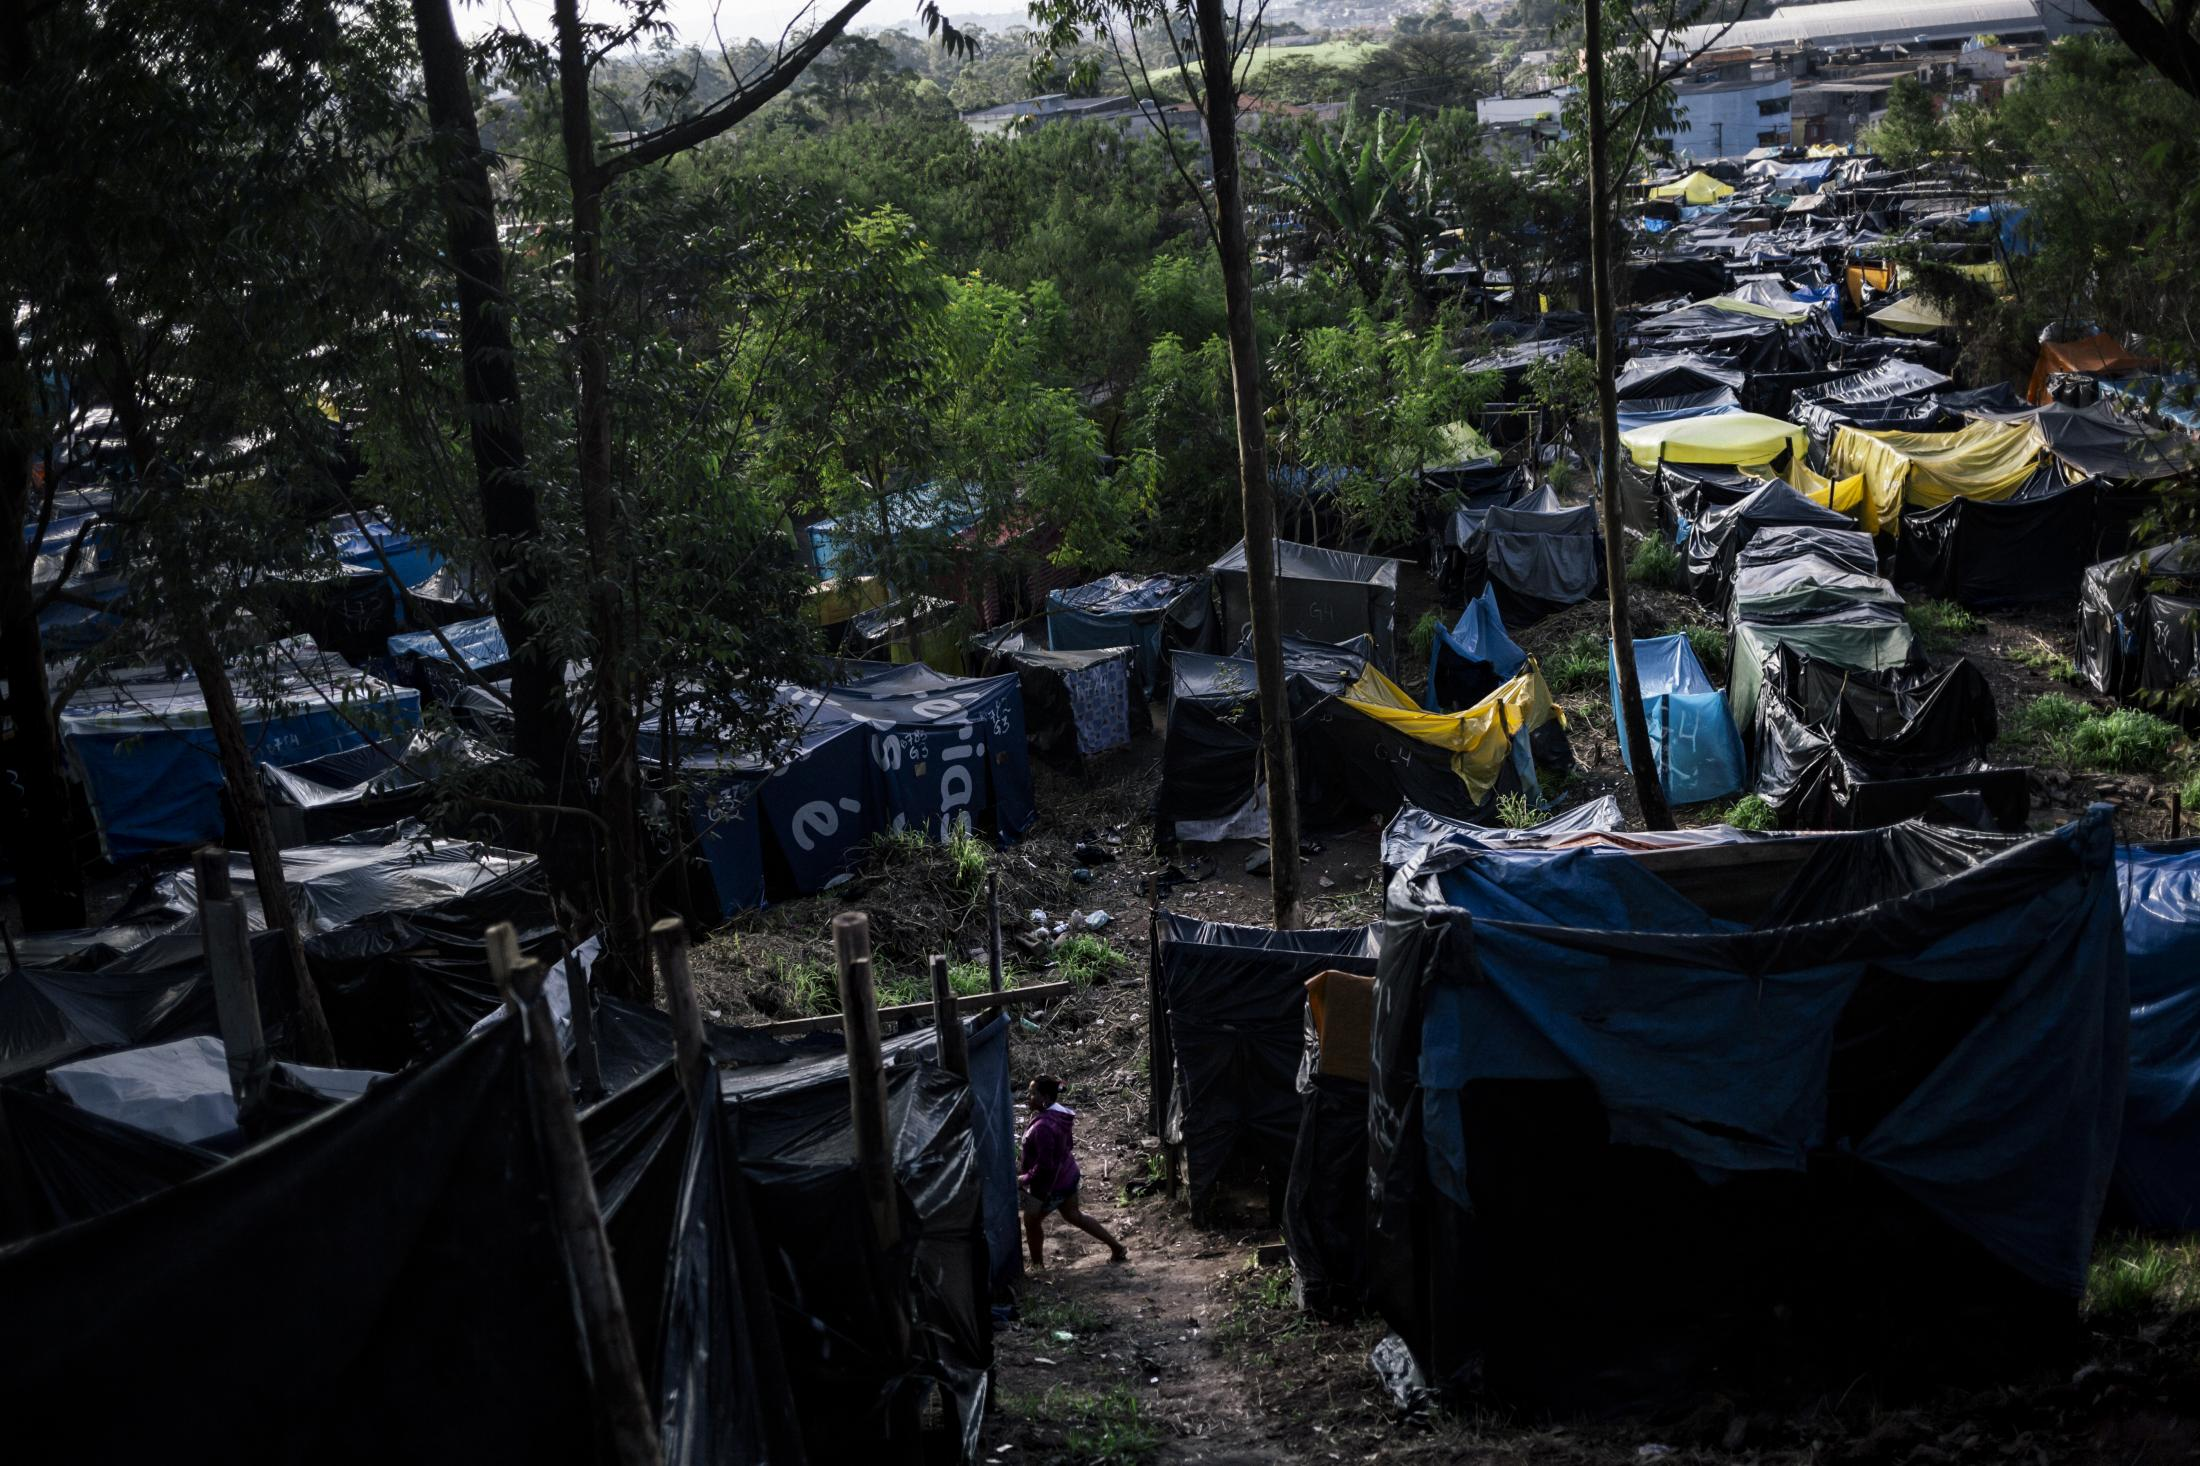 A woman passes by an improvised corridor among hundreds of shacks where families sleep on the abandoned lot with 34 acres of extension. Itaquera, São Paulo / Brazil. 2014.